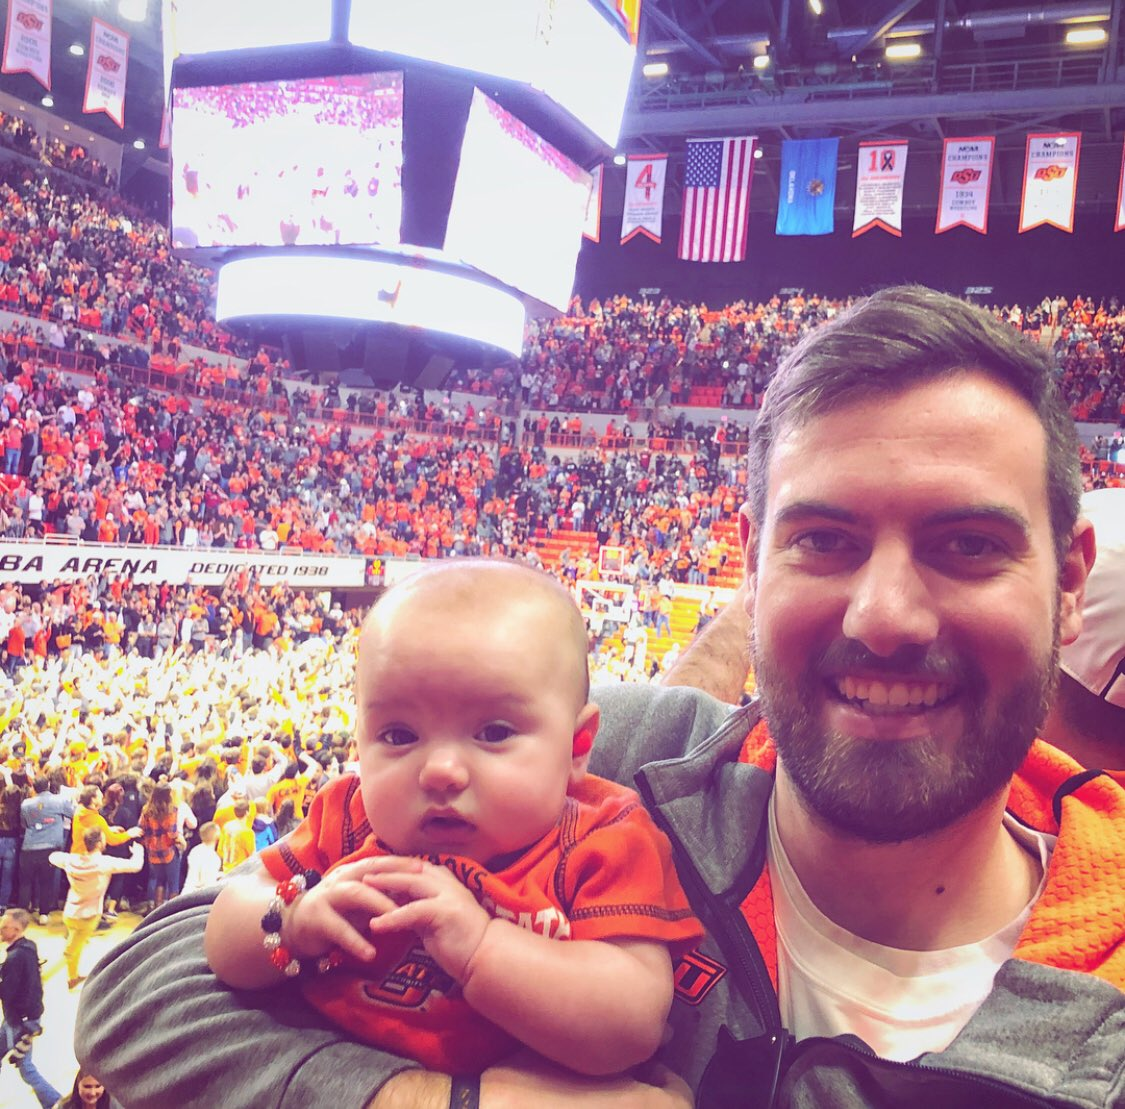 Maggie's first @OSUMBB game was a great one! #Bedlam #GoPokes https://t.co/kCM6UALQO2